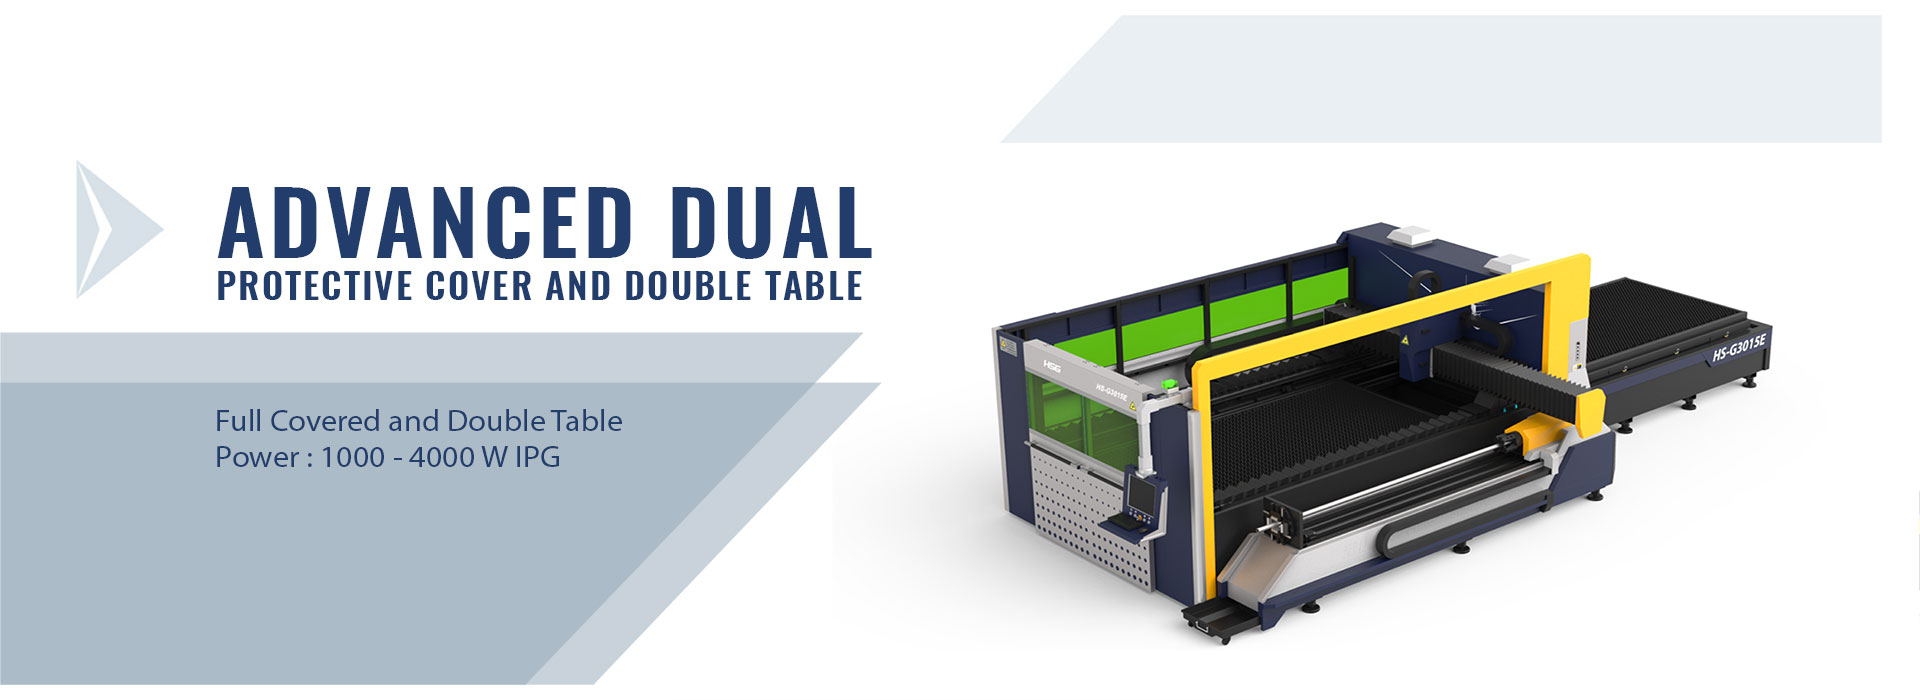 Advance Dual Protective Cover and Double Table